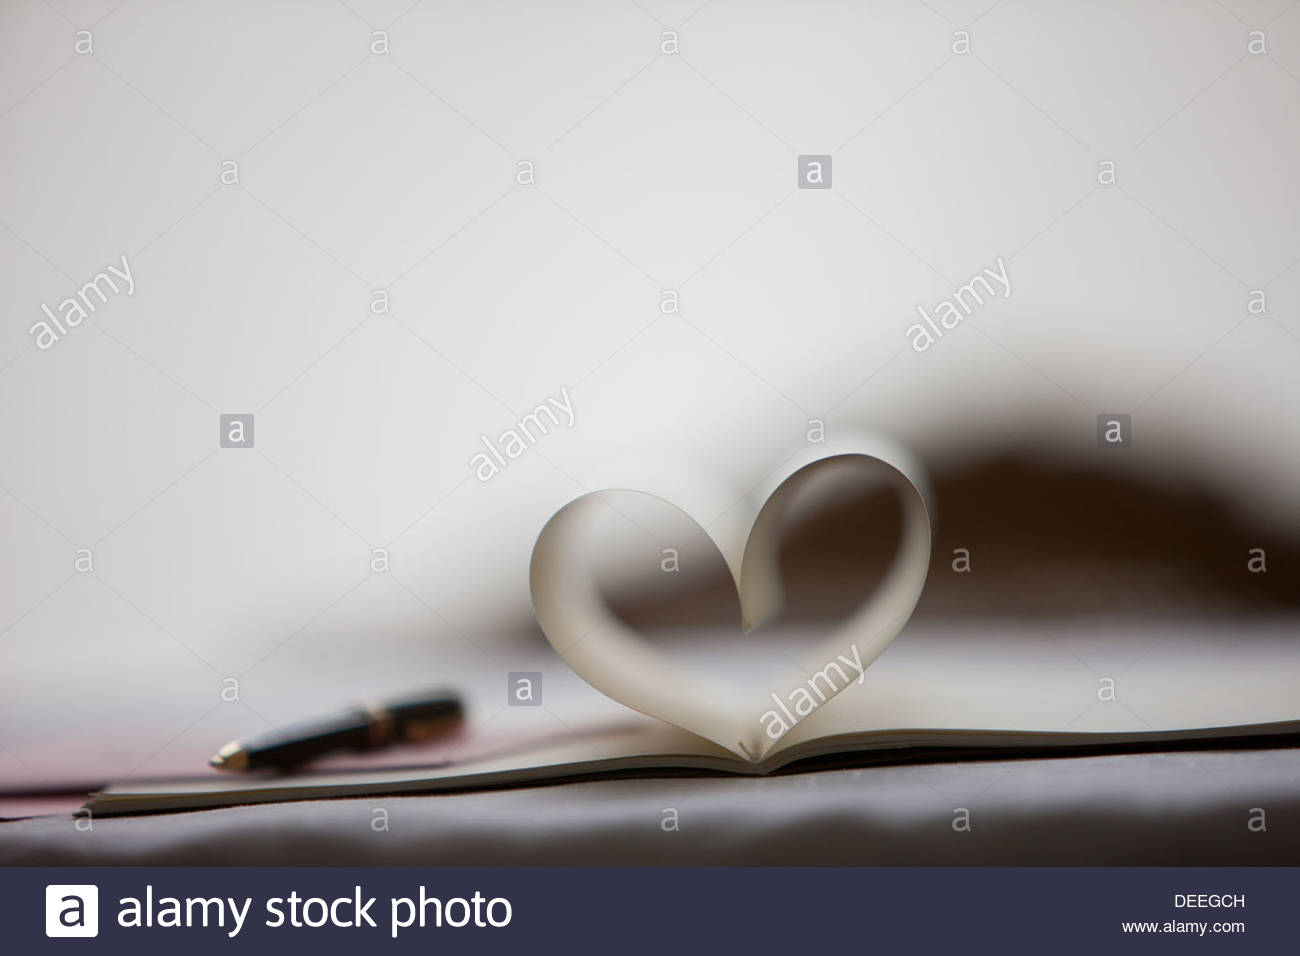 Pen and pages of notebook forming heart-shape - Stock Image